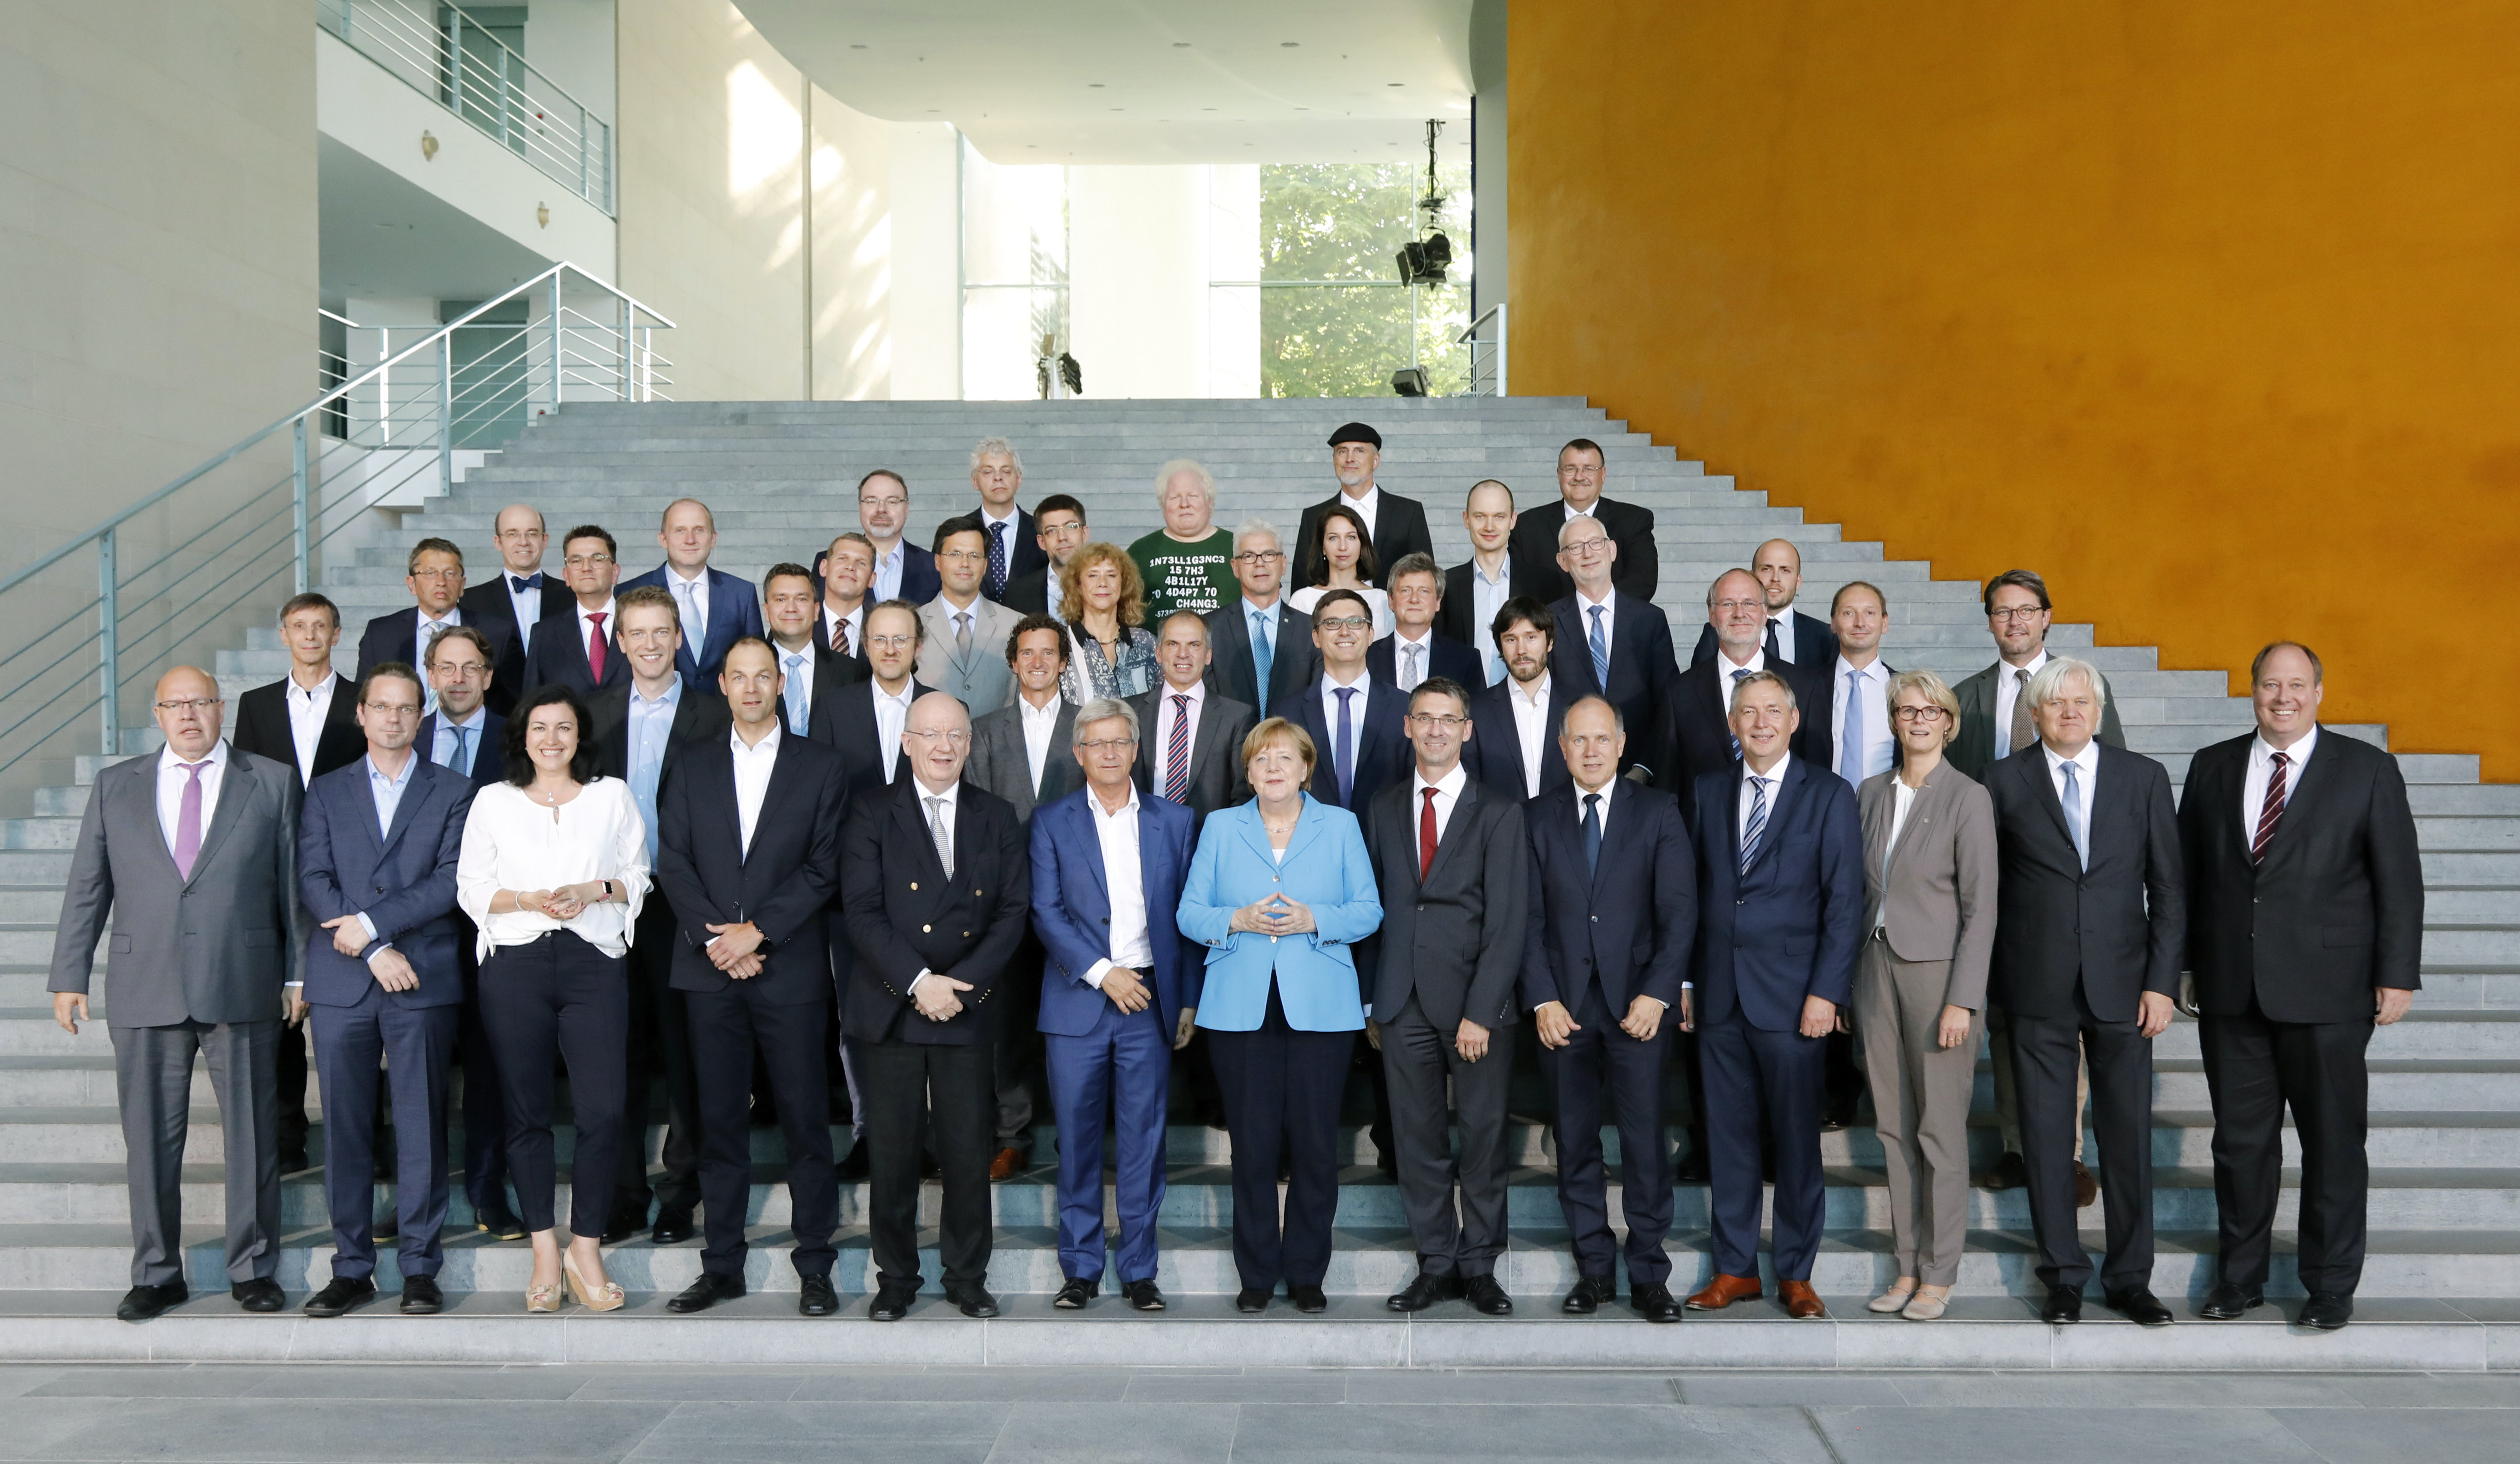 group photo with Chancellor Merkel